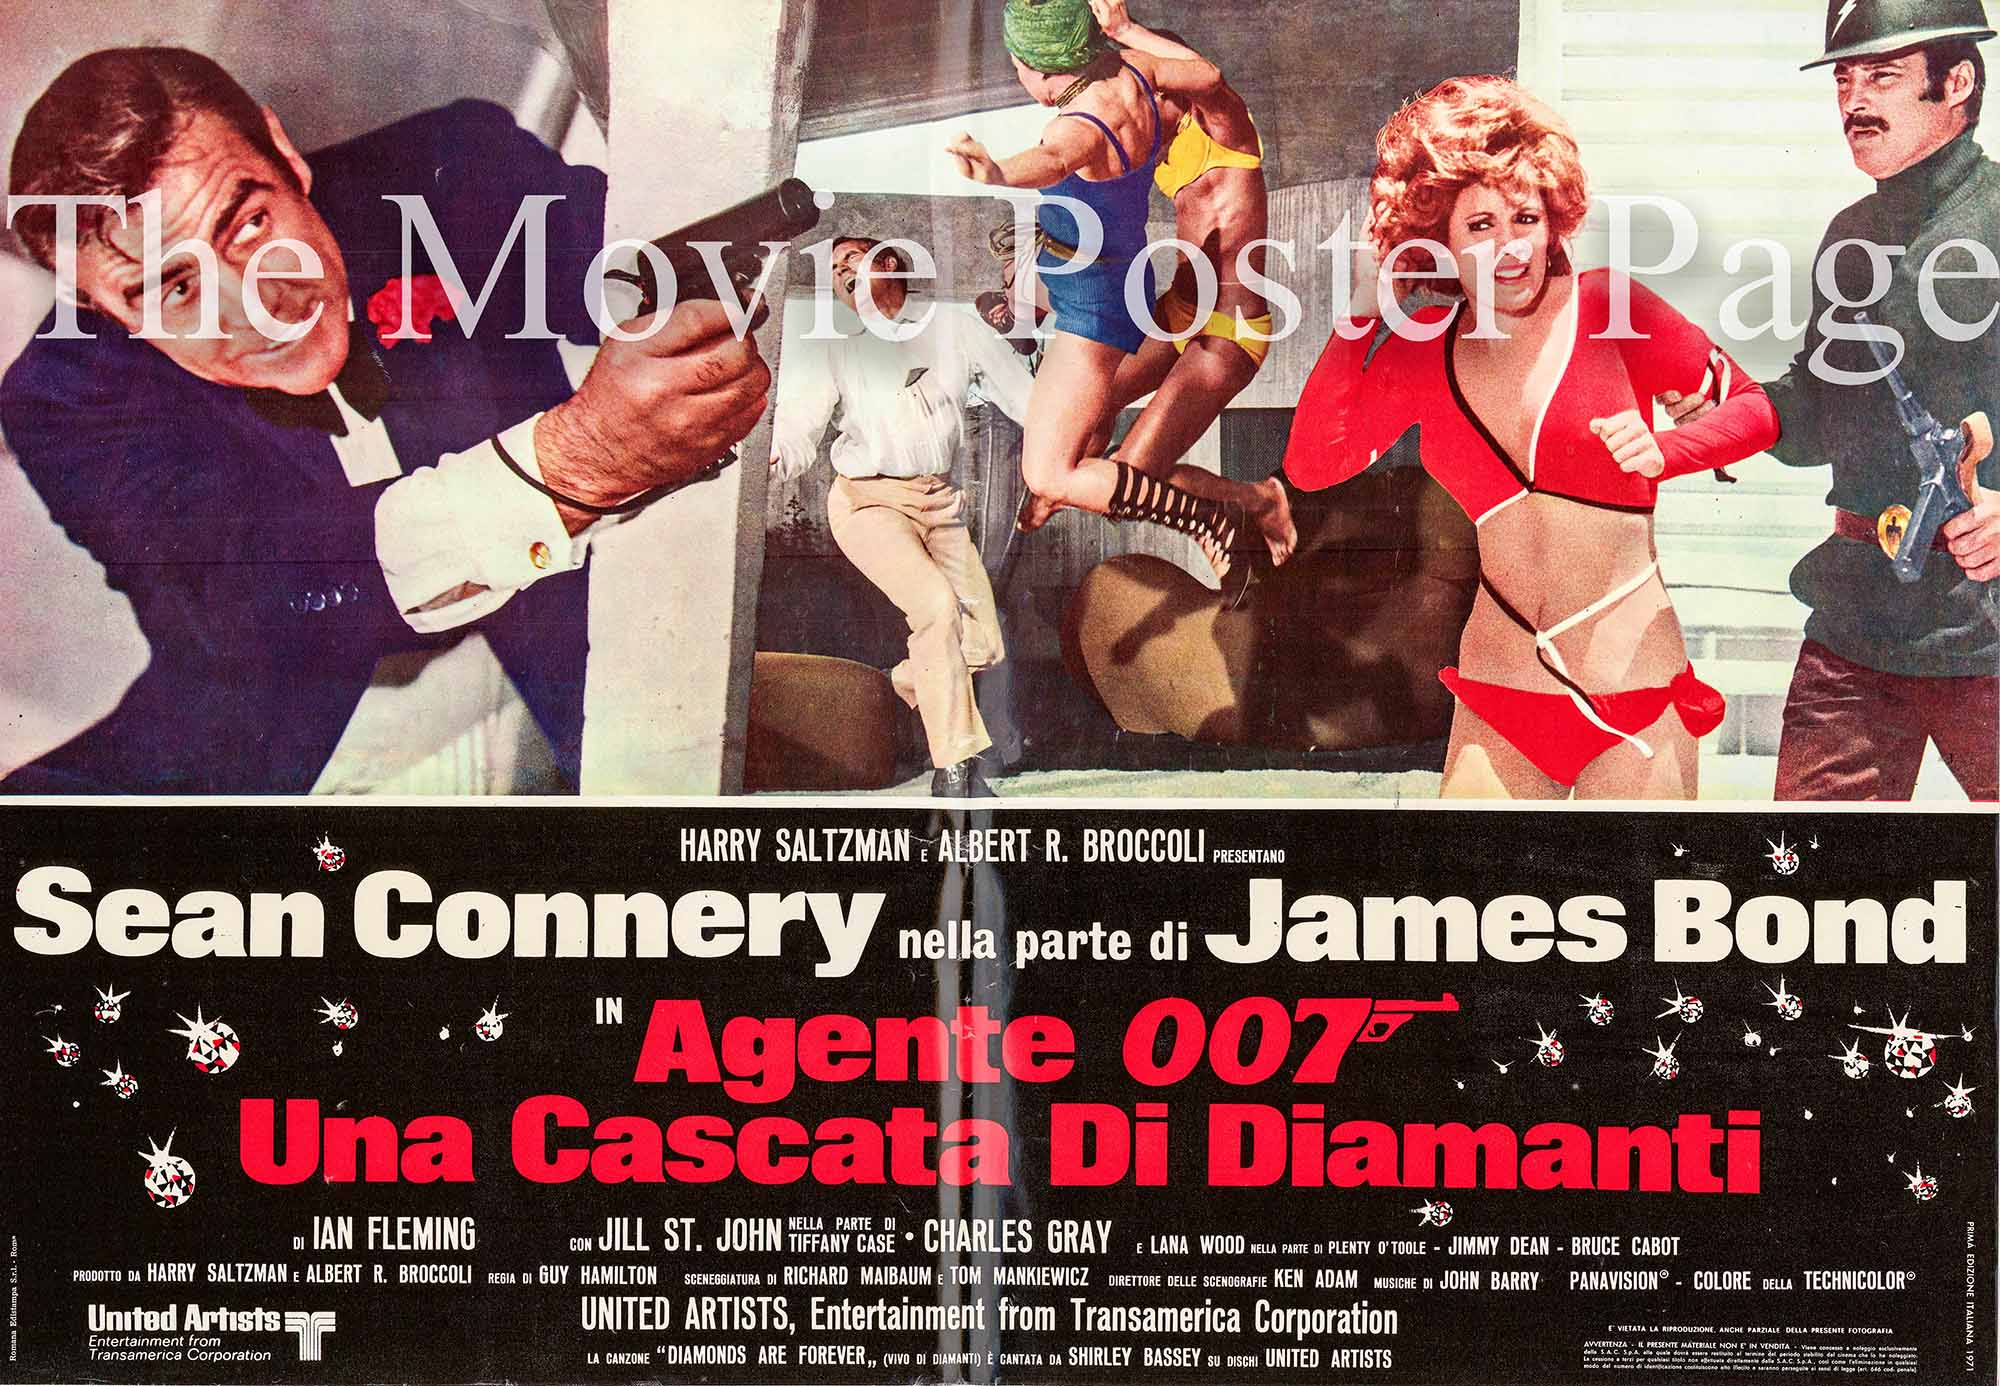 Pictured here is an Italian busta poster made to promote the 1971 Guy Hamilton film Diamonds are Forever starring Sean Connery.